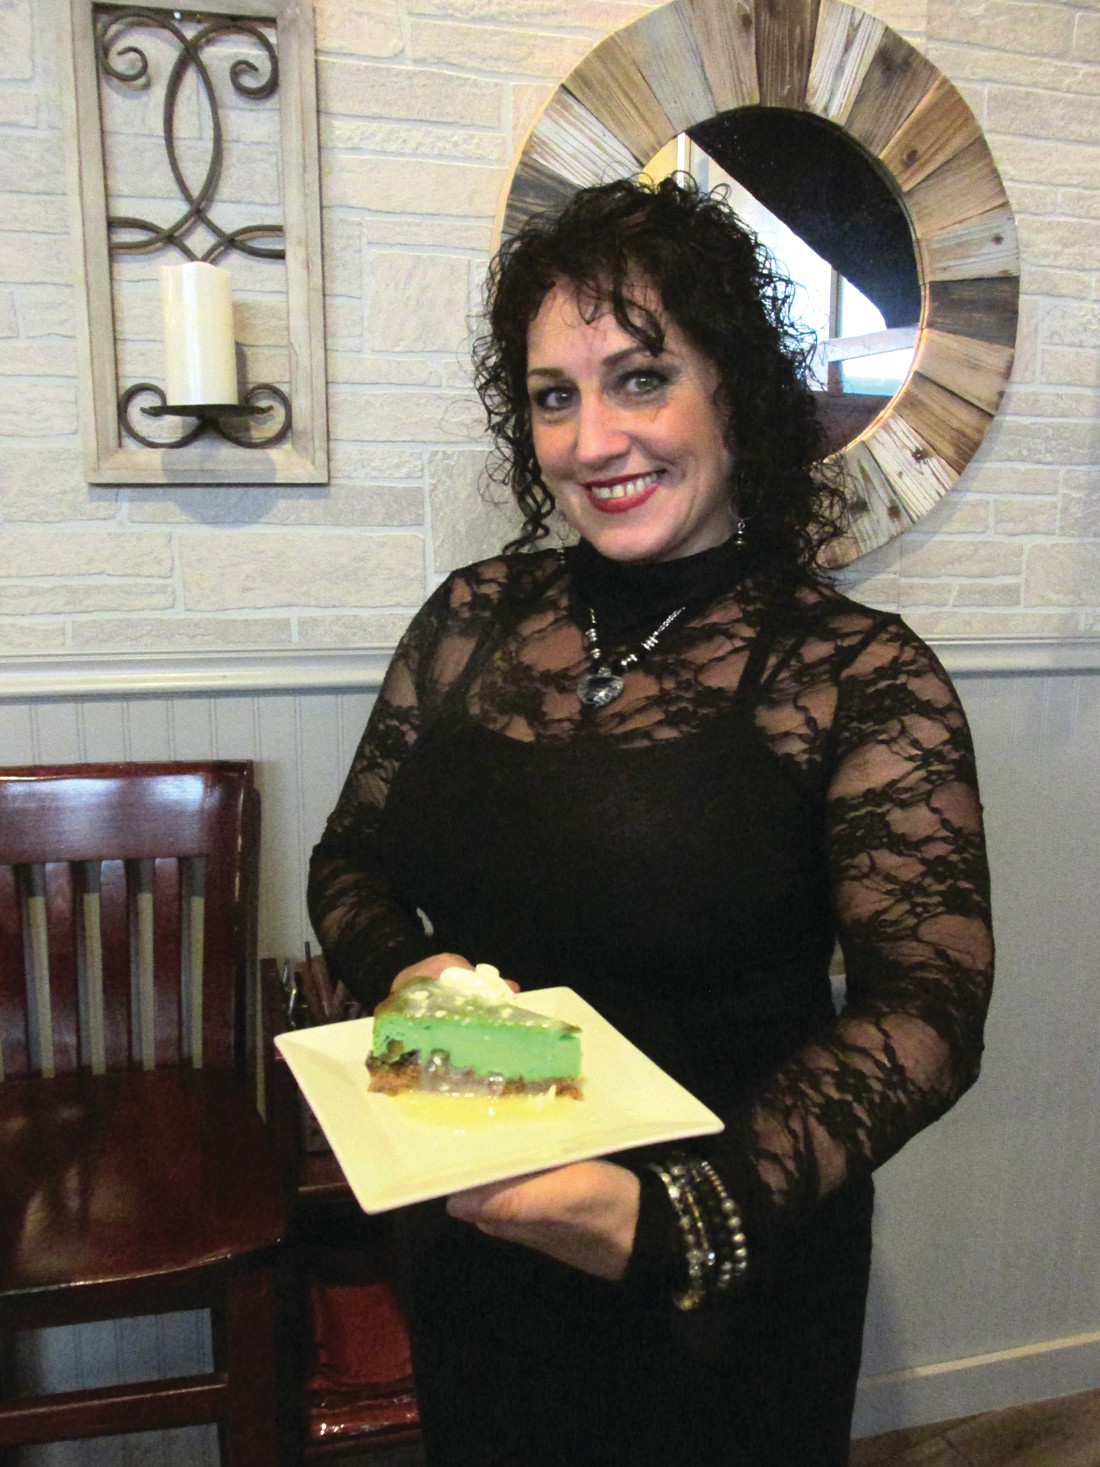 CLEVER CREATION: Susie Marshall, a super staffer at The Ave Restaurant Bar & Grill, holds a serving of Pistachio Cheesecake, one of Chef-Owner Jennifer Lombardo's creations.